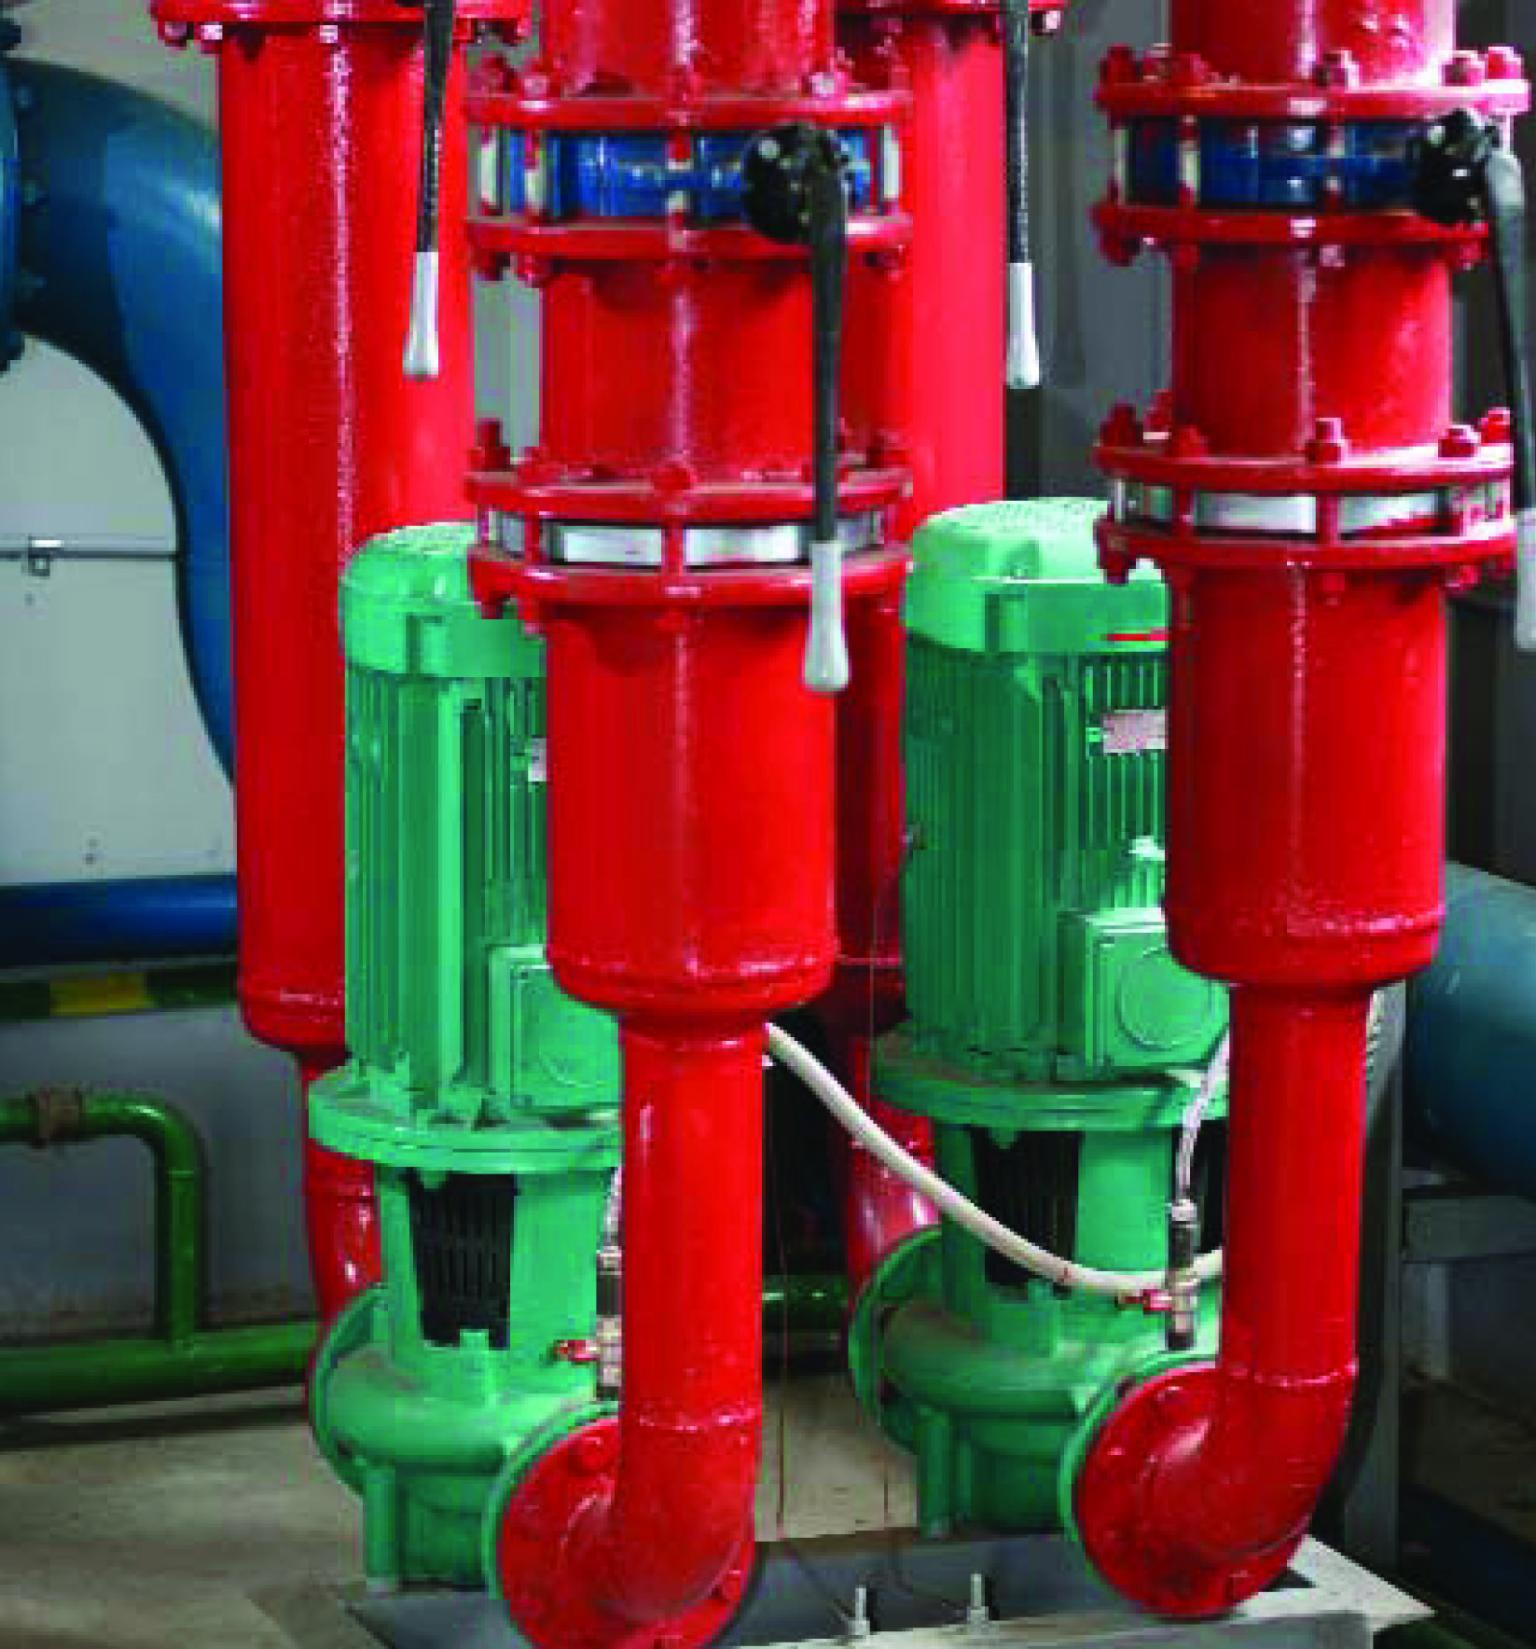 A standard duty and standby pump configuration